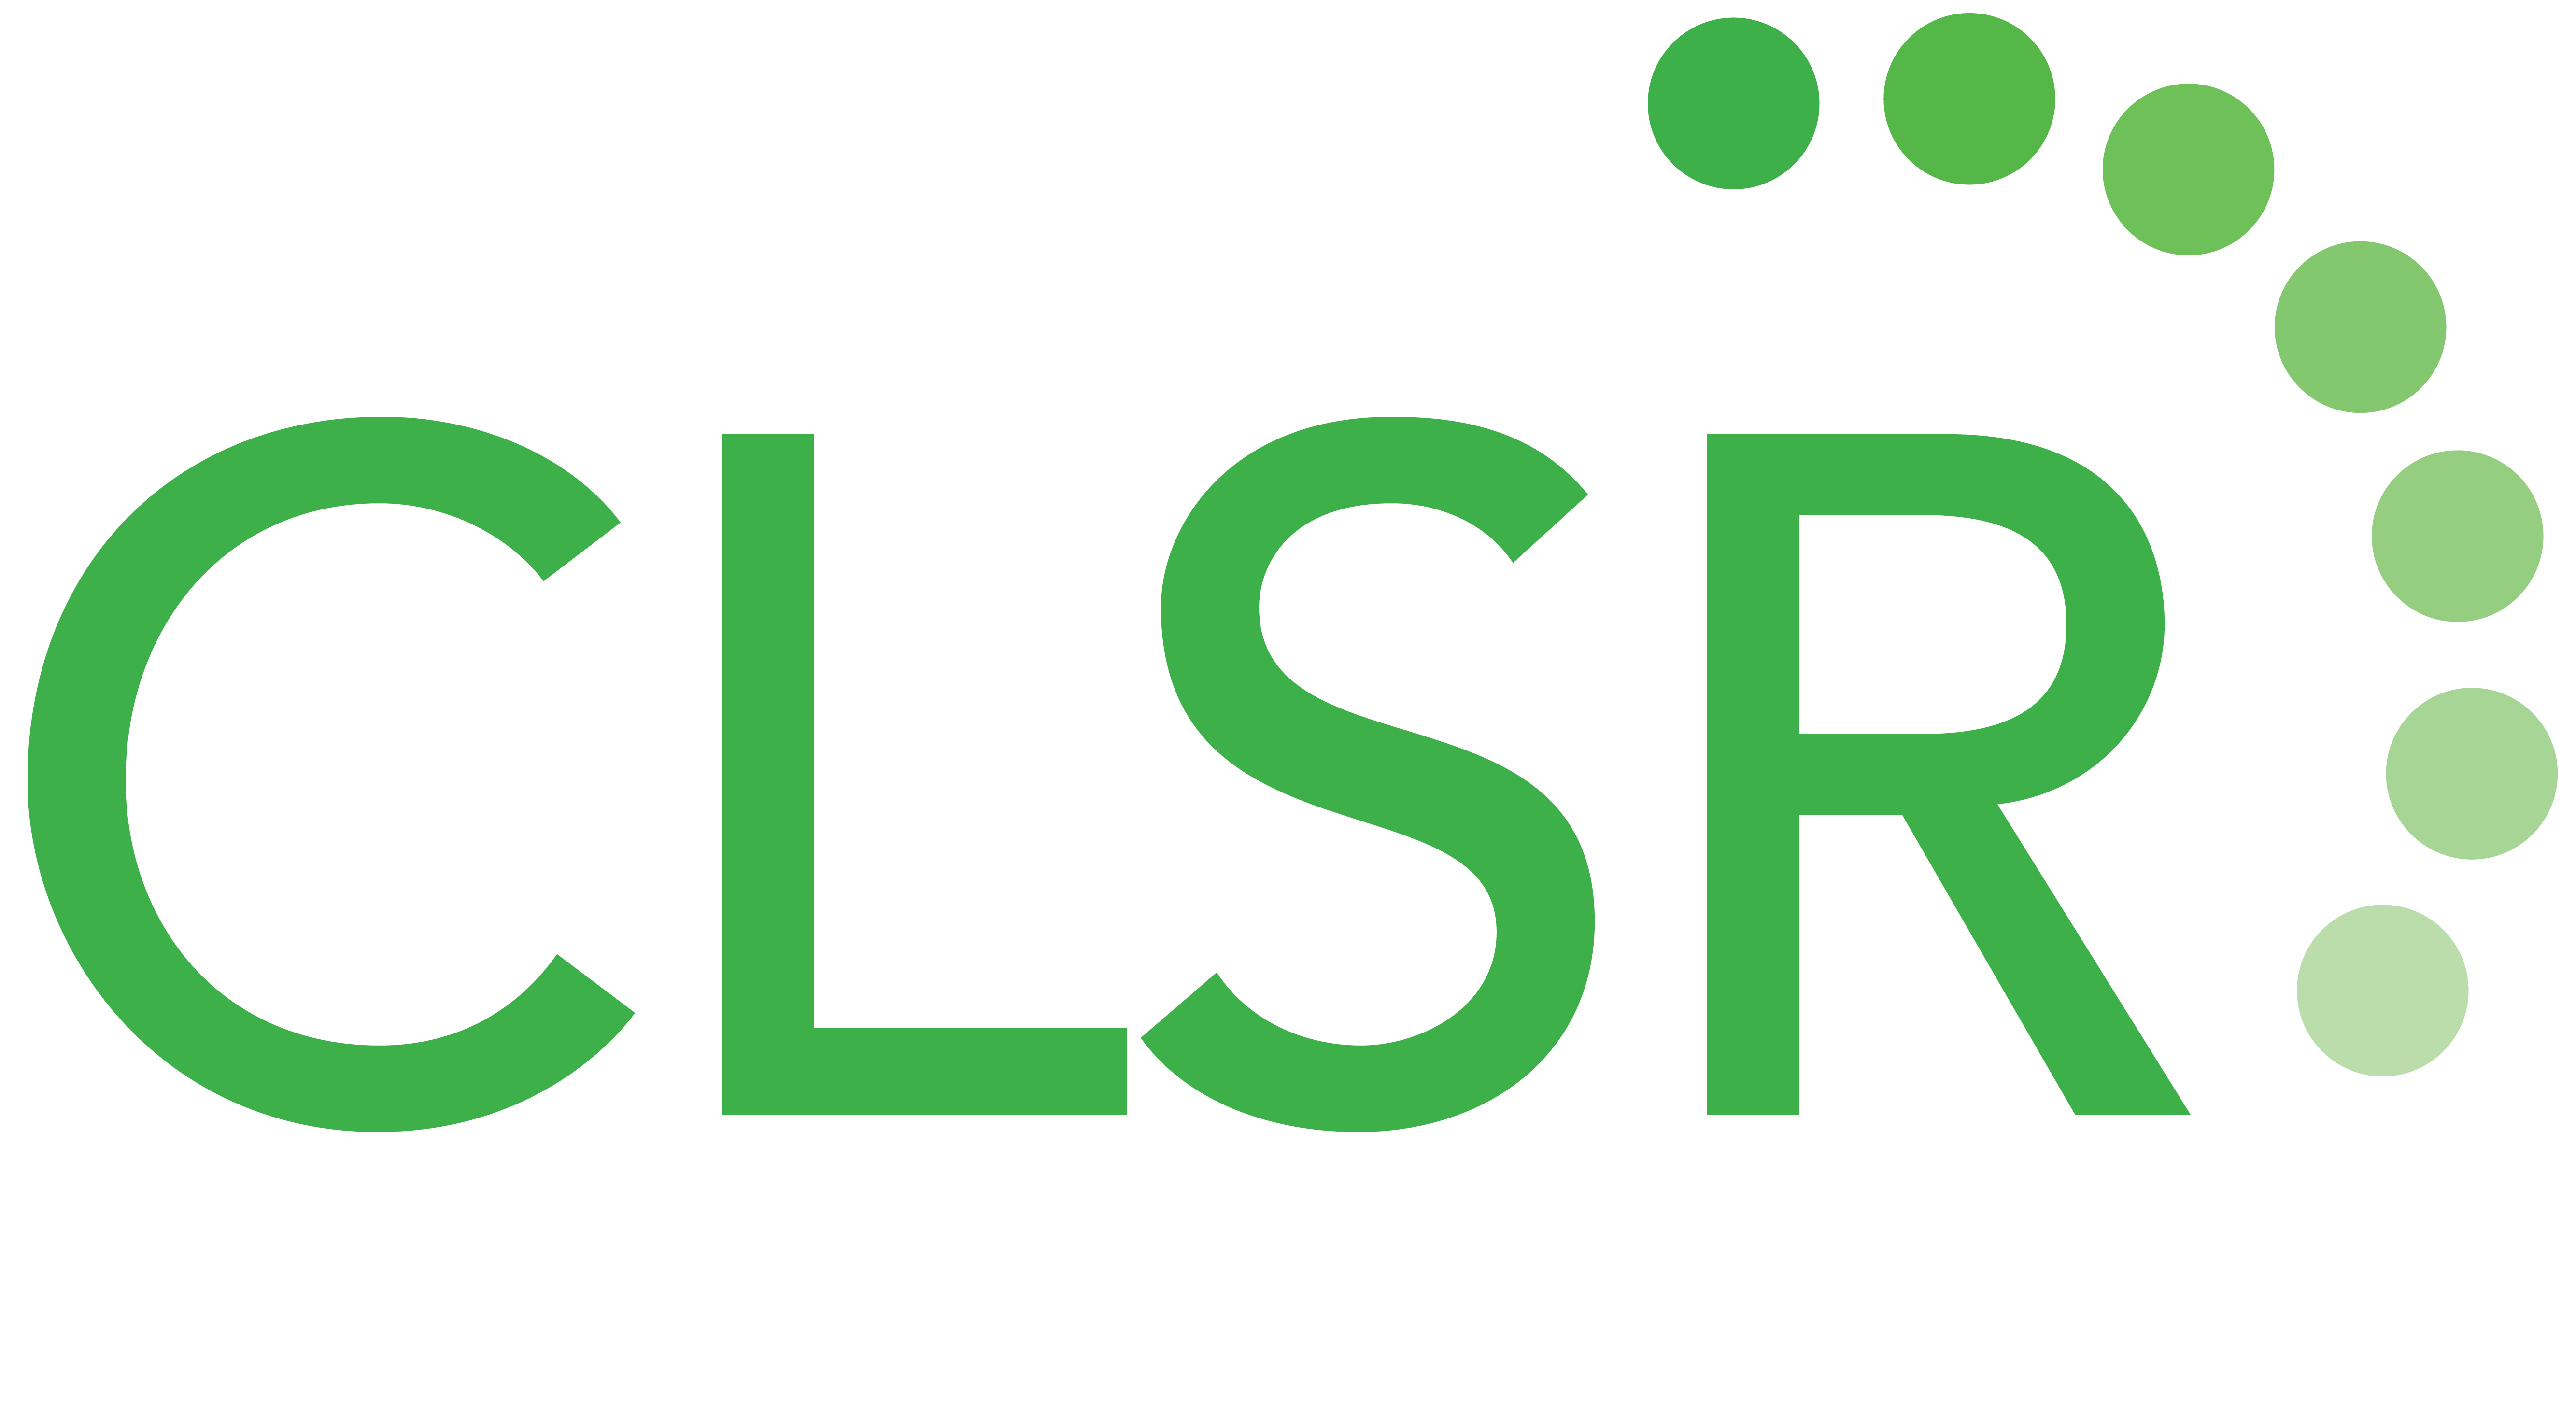 CLSR